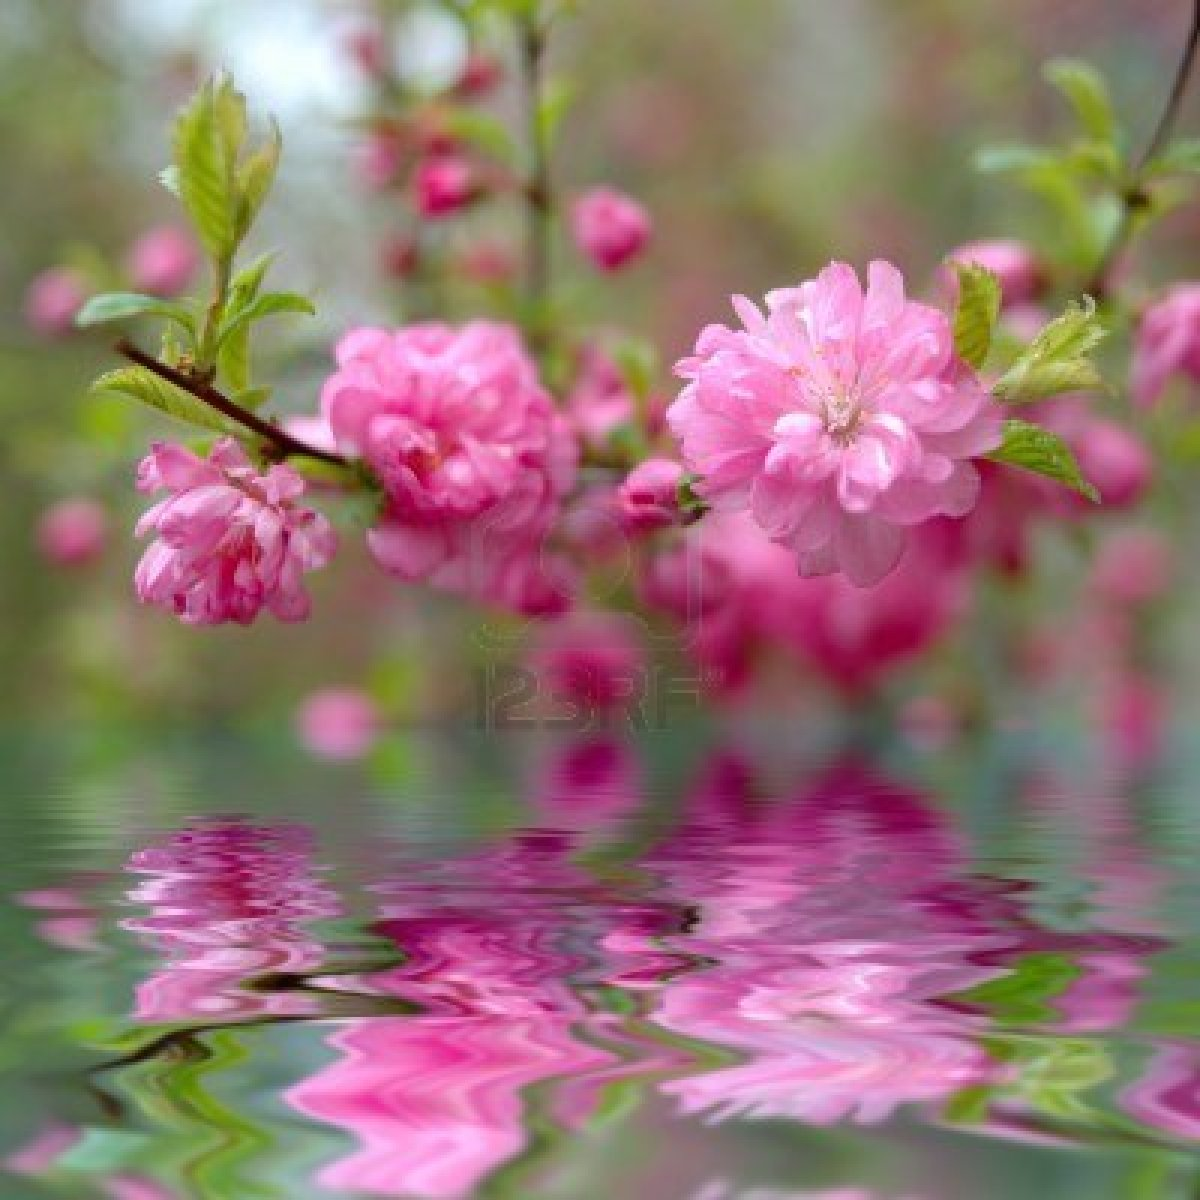 Spring Pink Cherry Blossom Flowers Sakura In Blossom Time Wallpaper